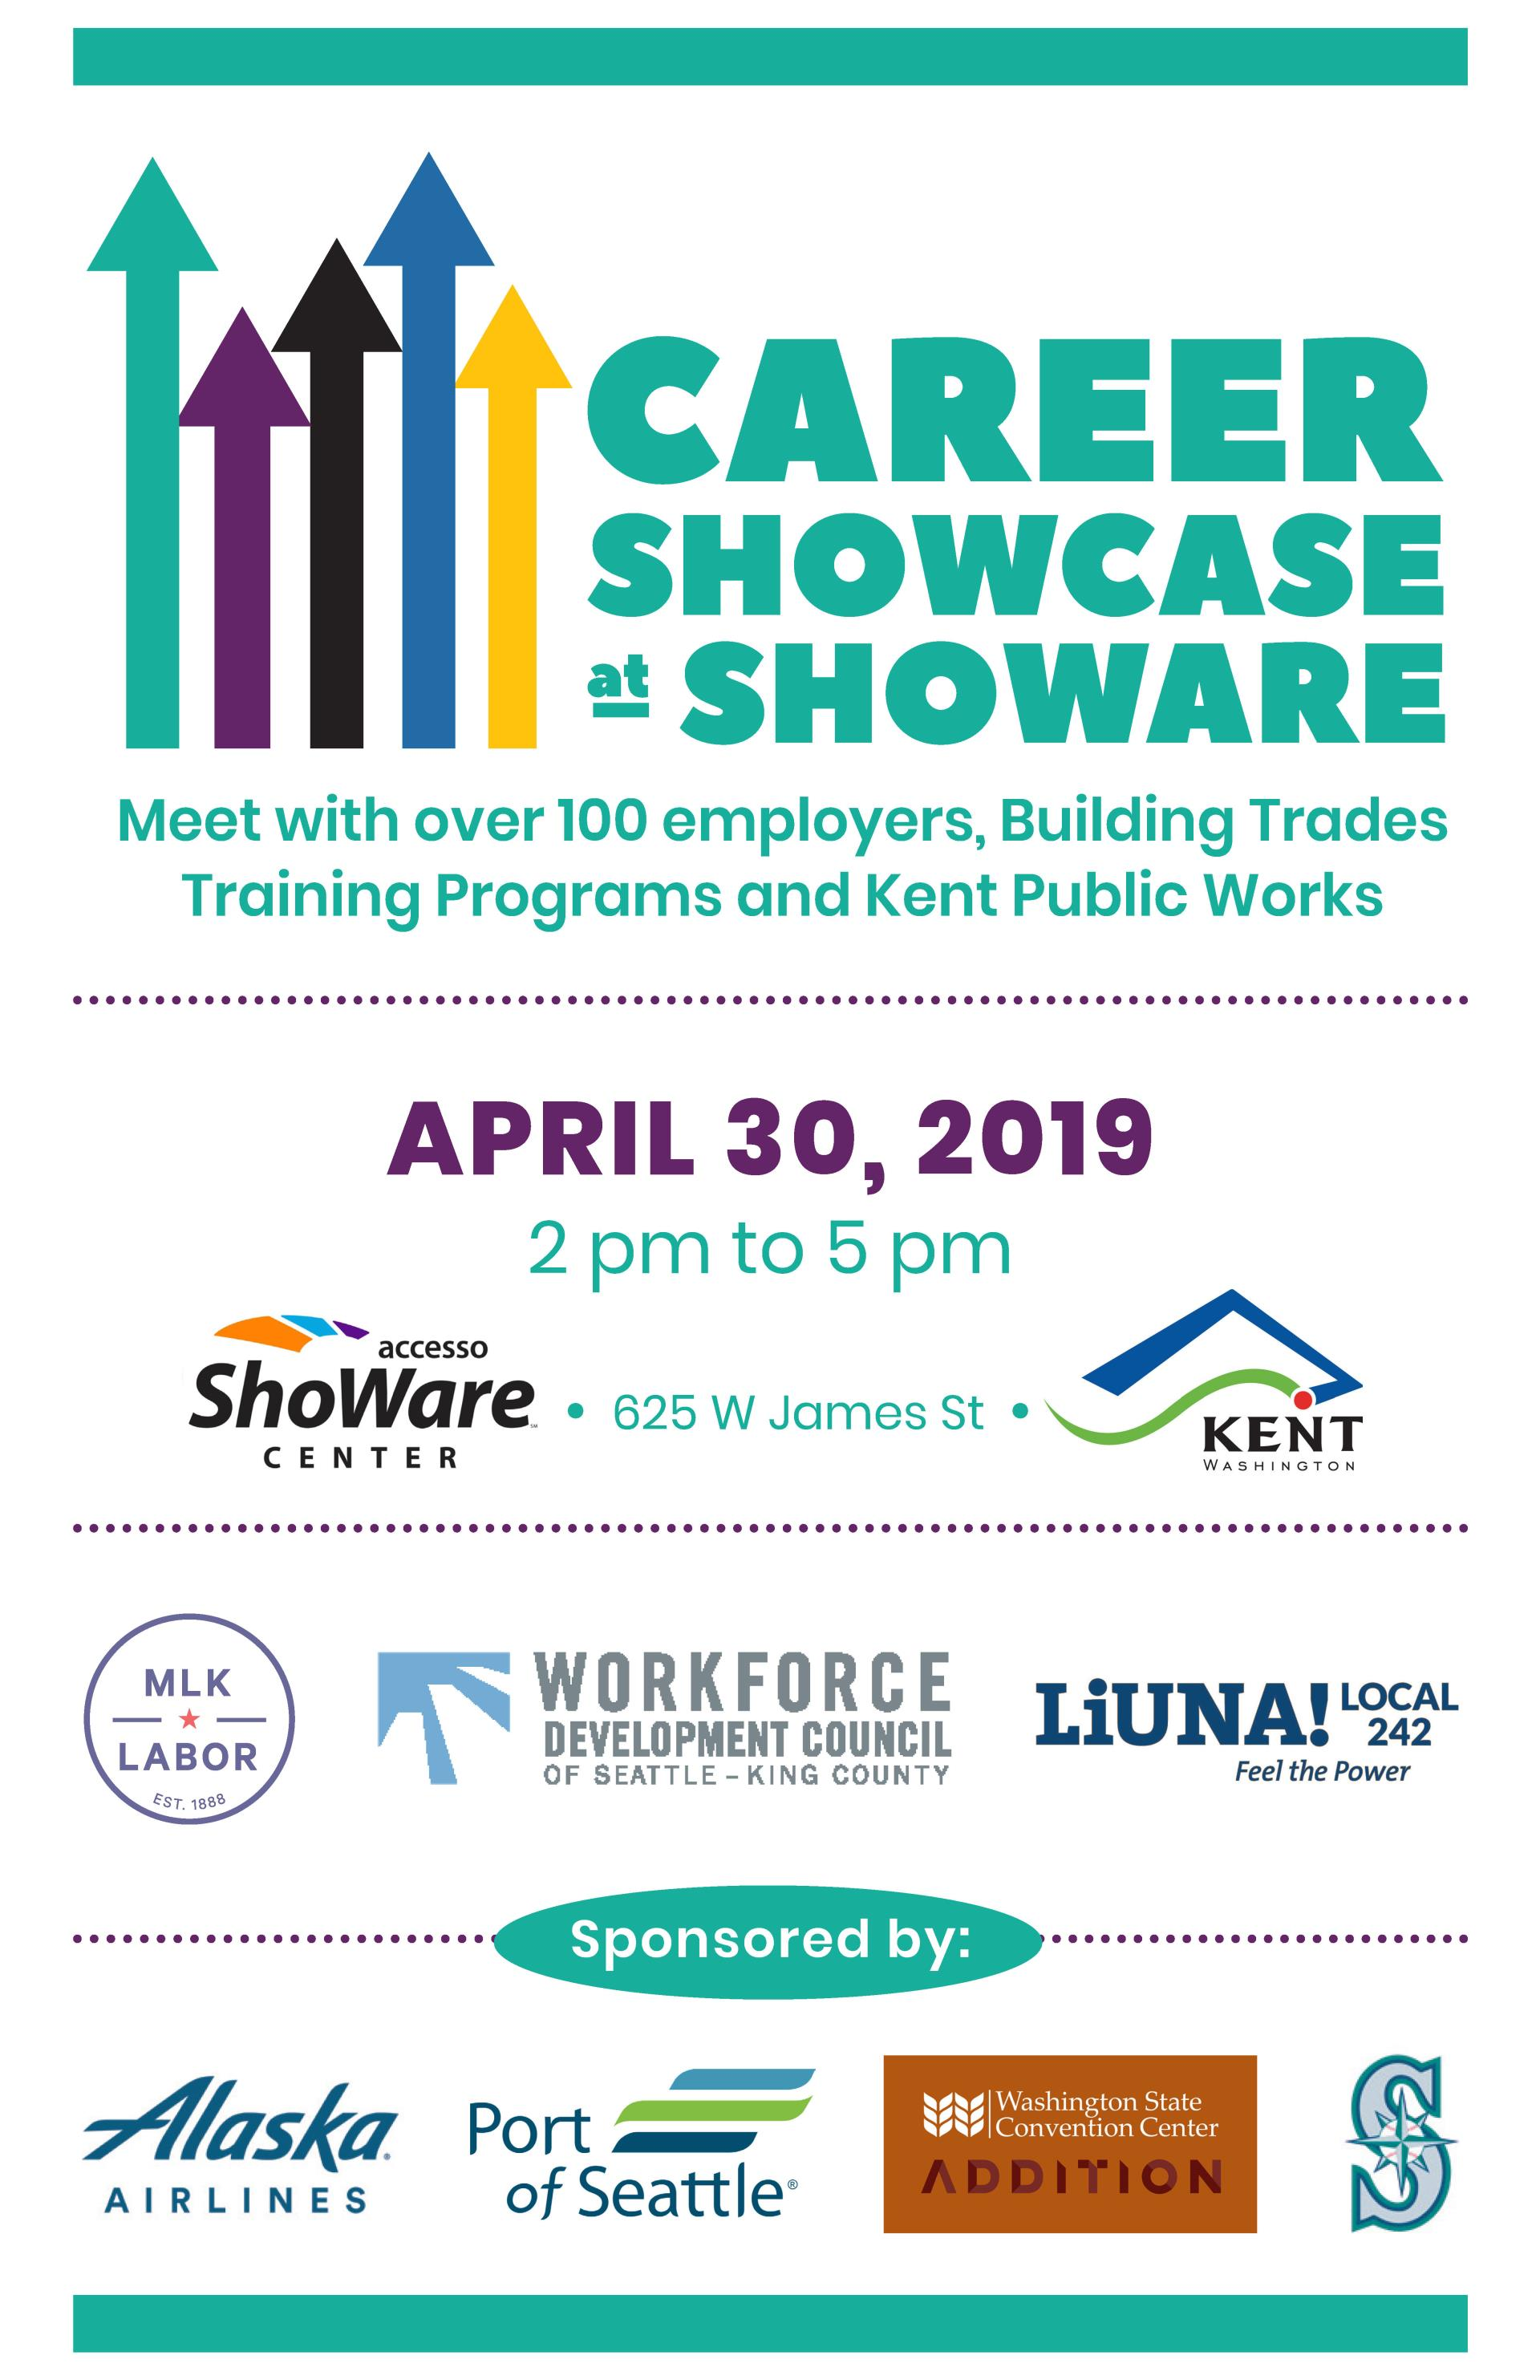 Career Showcase at ShoWare, April 30. 2019